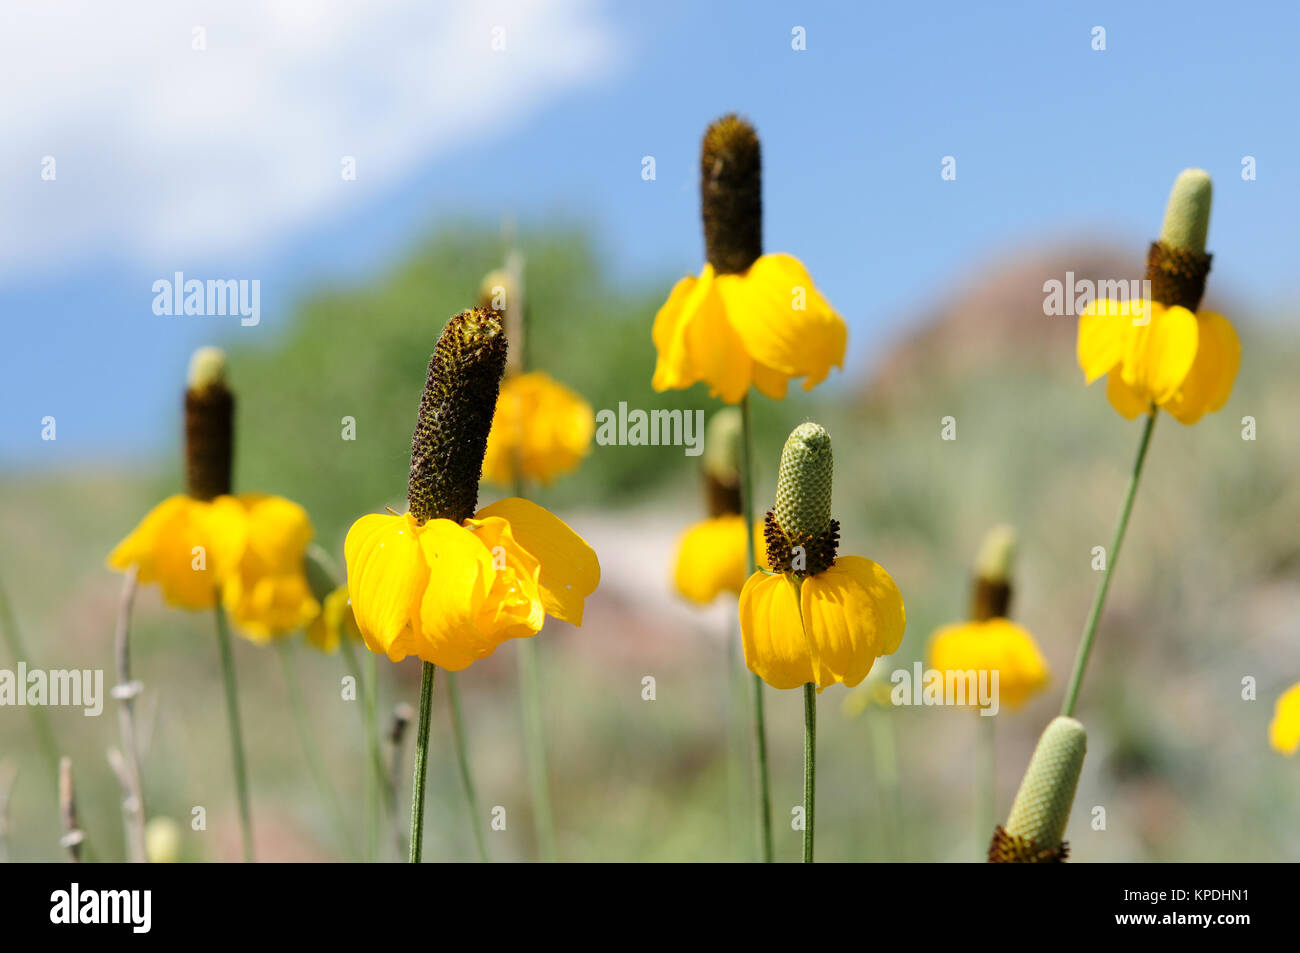 Yellow Prairie Coneflowers Flowers With Yellow Skirt Blooming On A